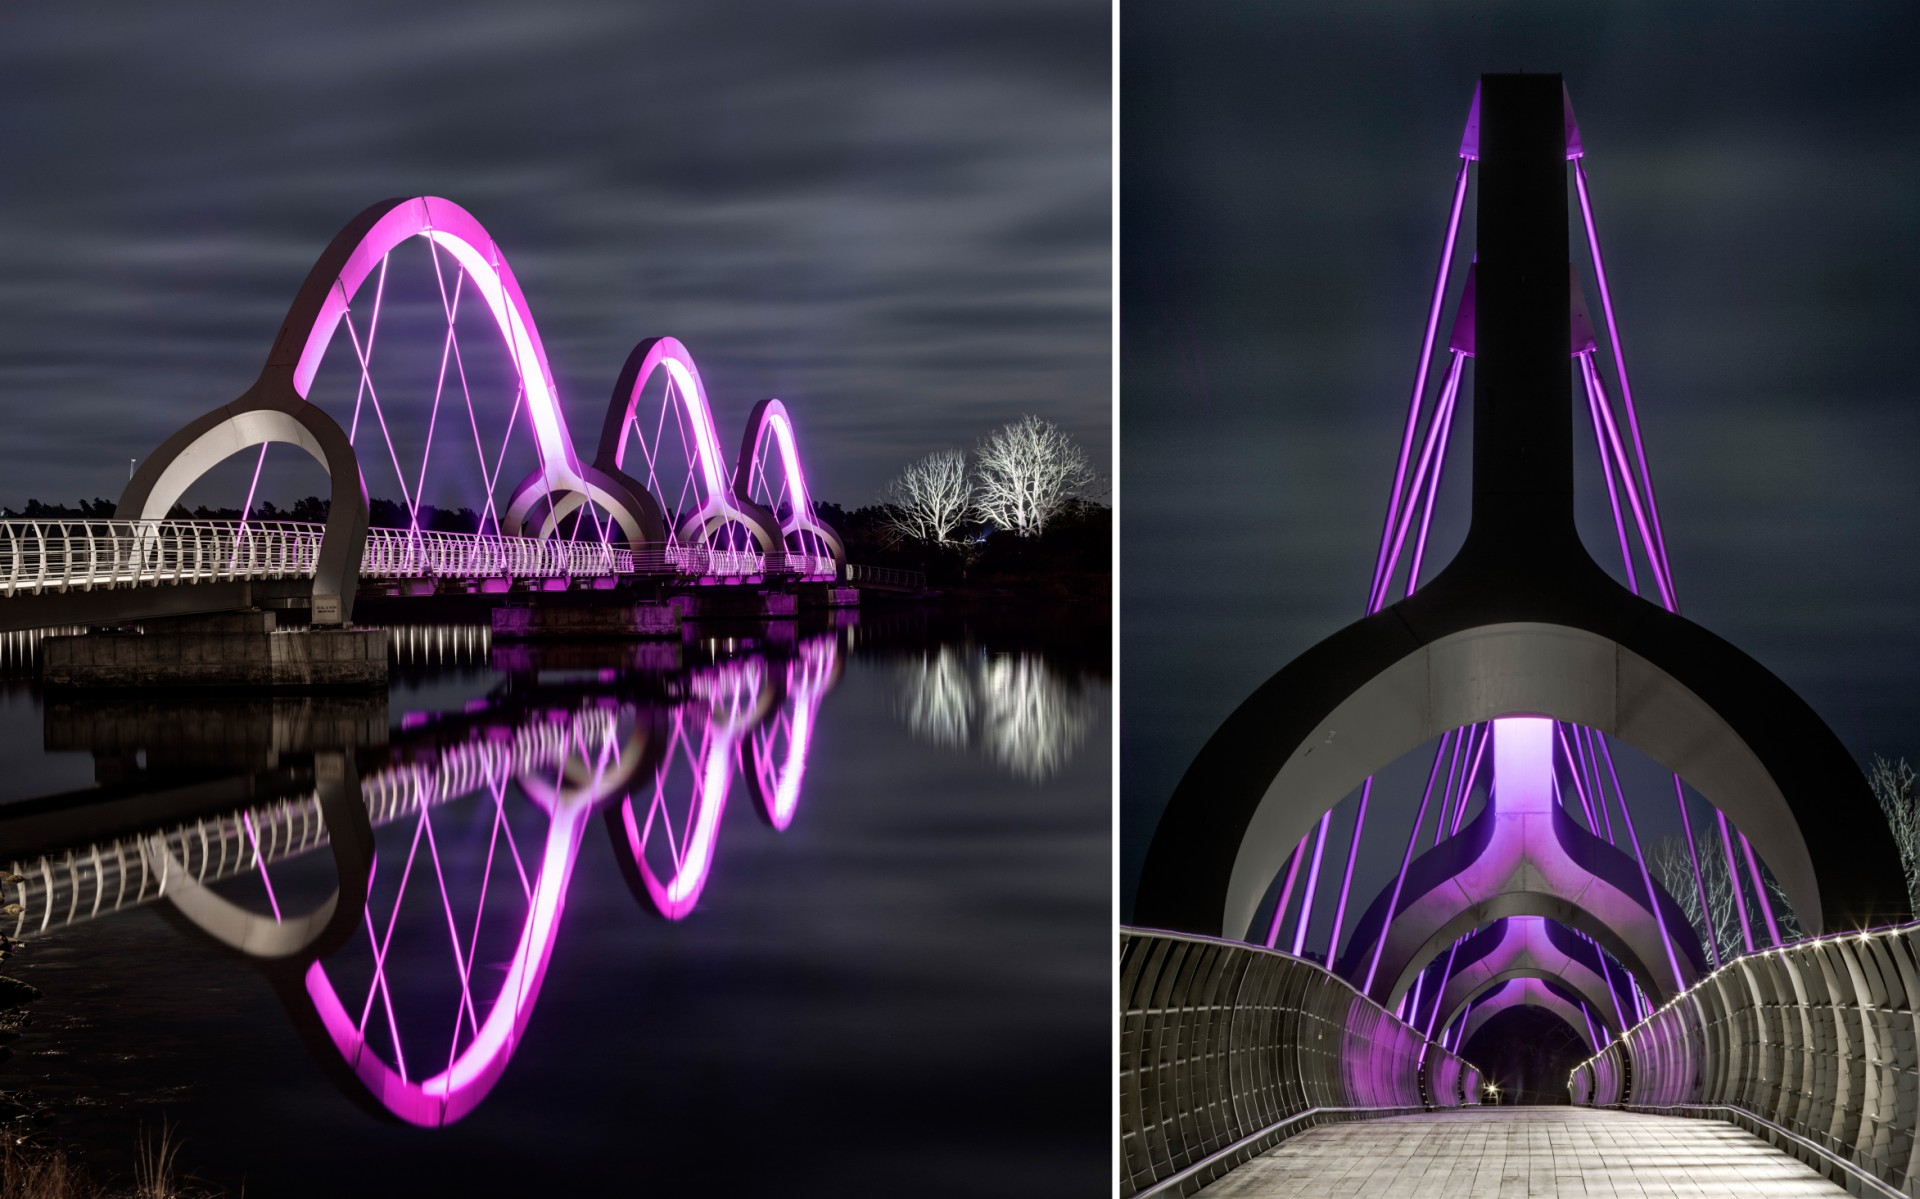 The firm used Lumenfacade Color Changing luminaires to graze the suspension cables and light the distinctive arches.